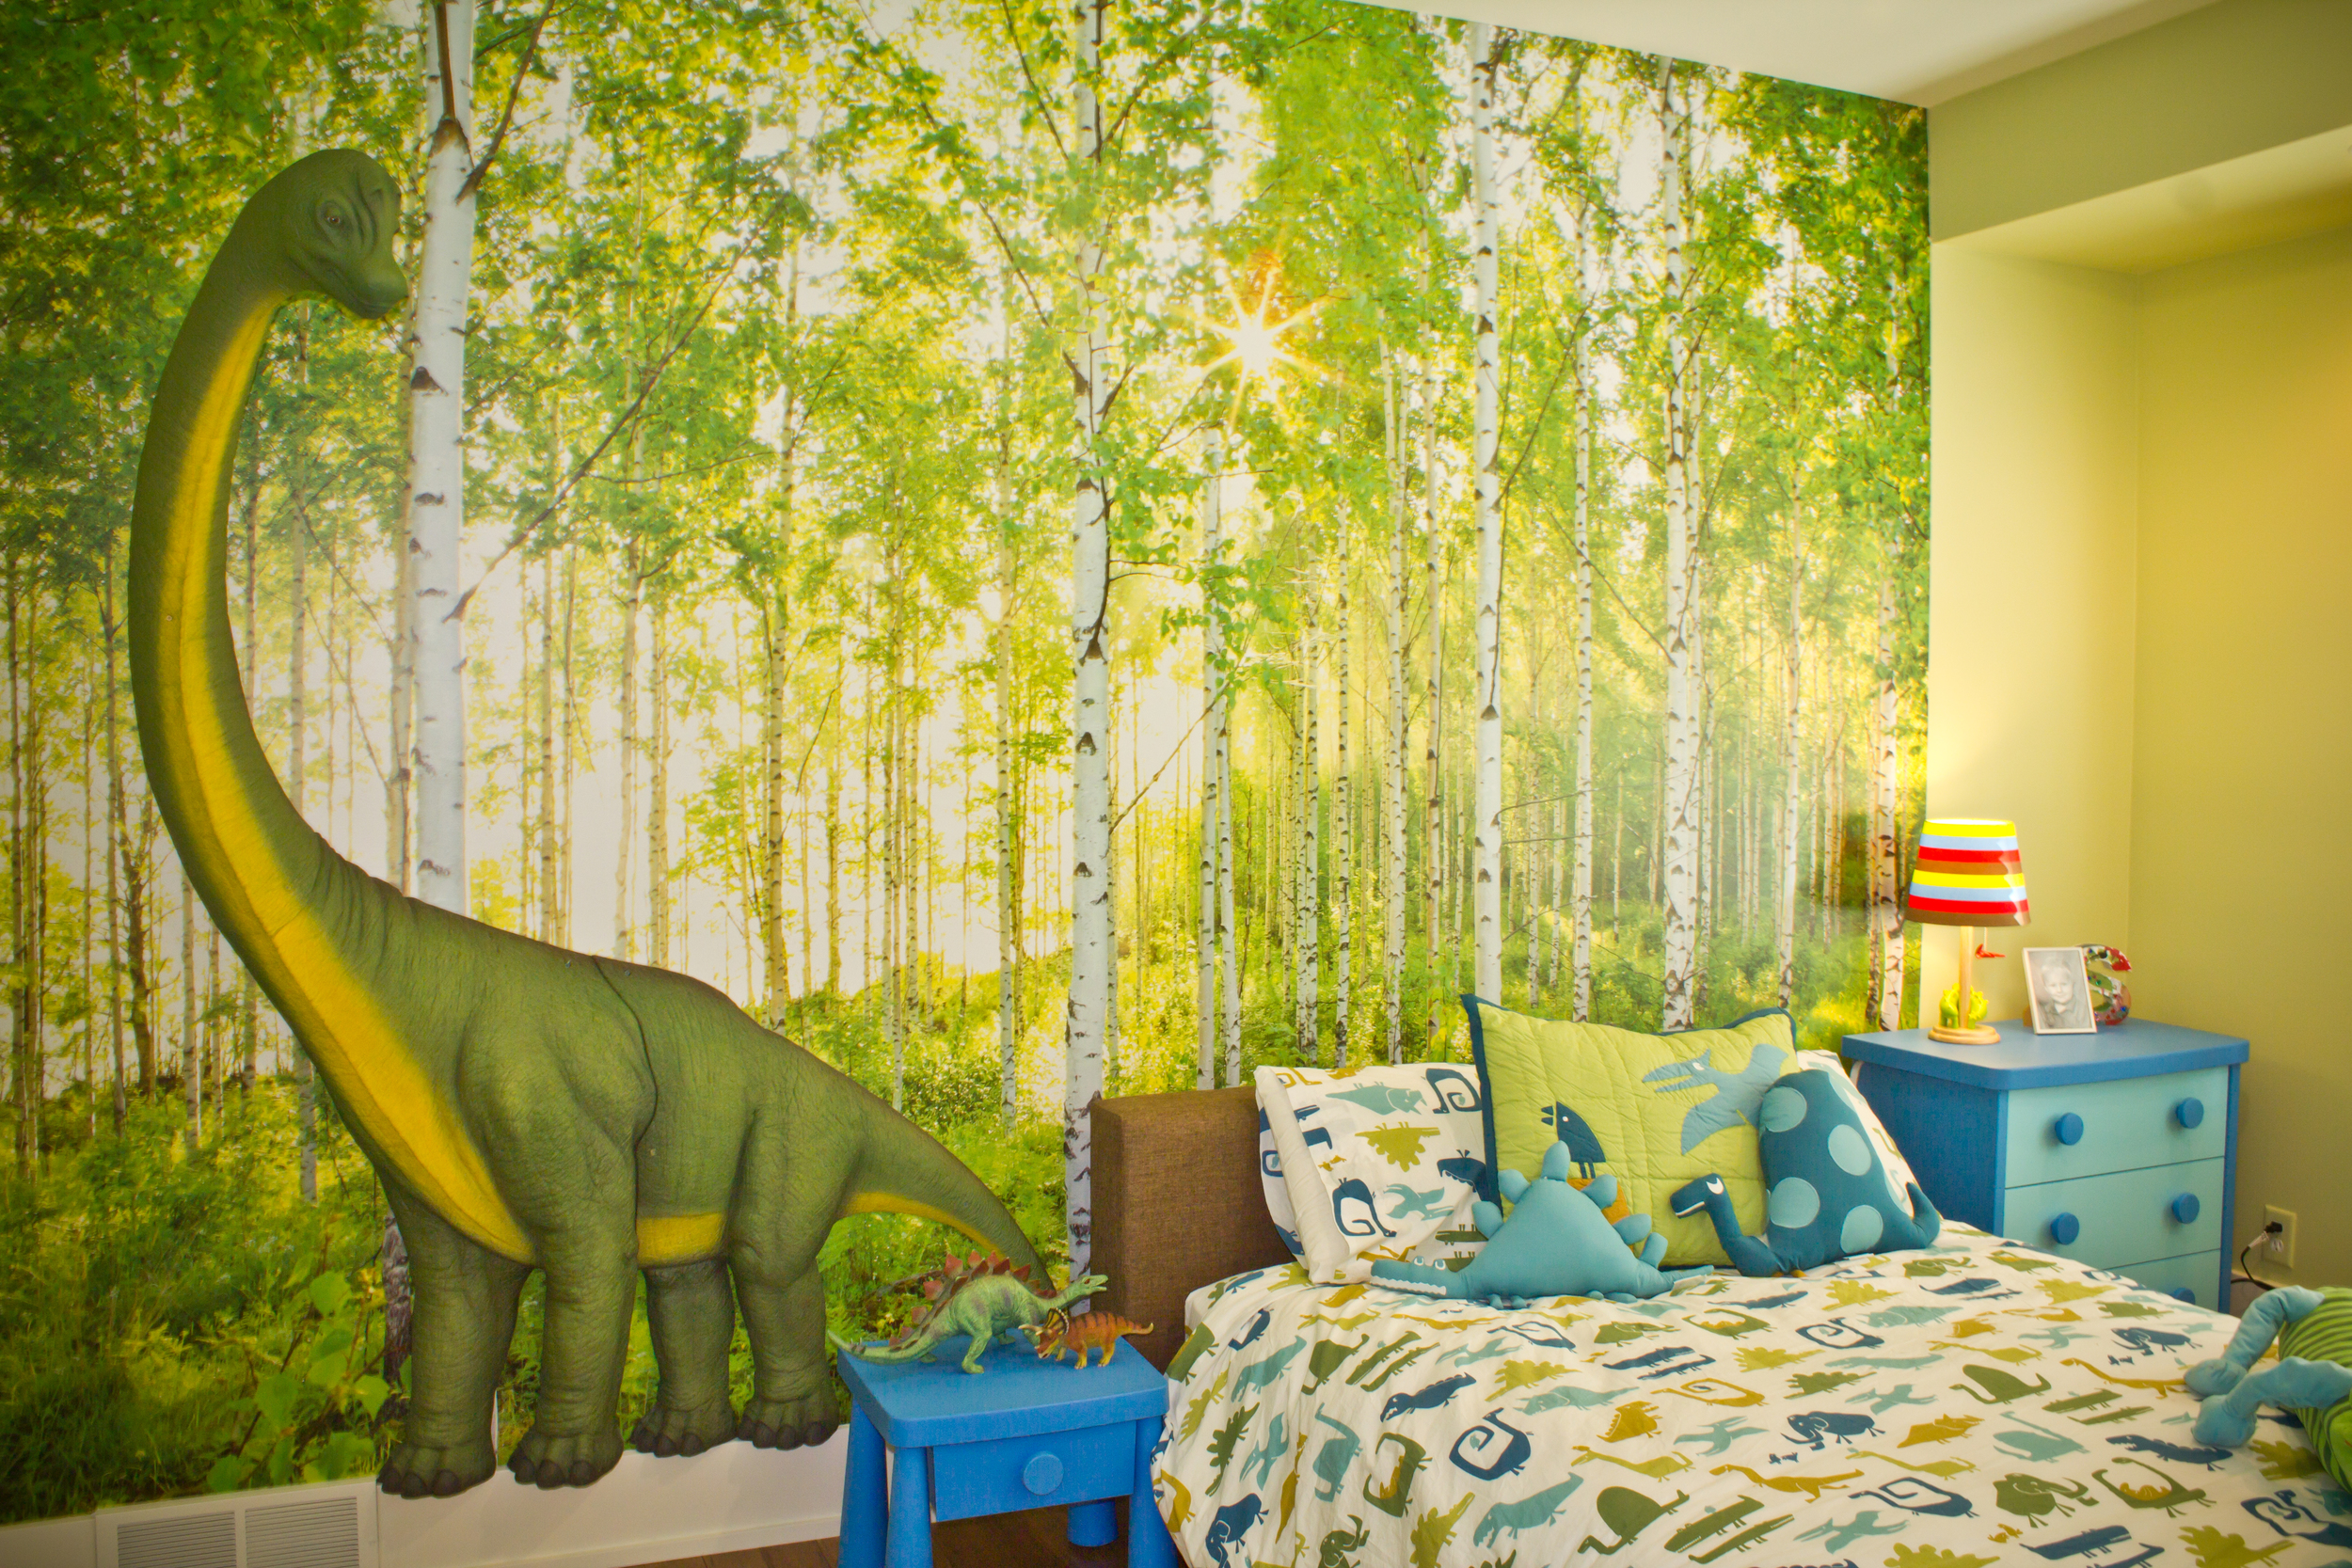 Fuchsia-Design-Dinosaur-Themed-Bedroom